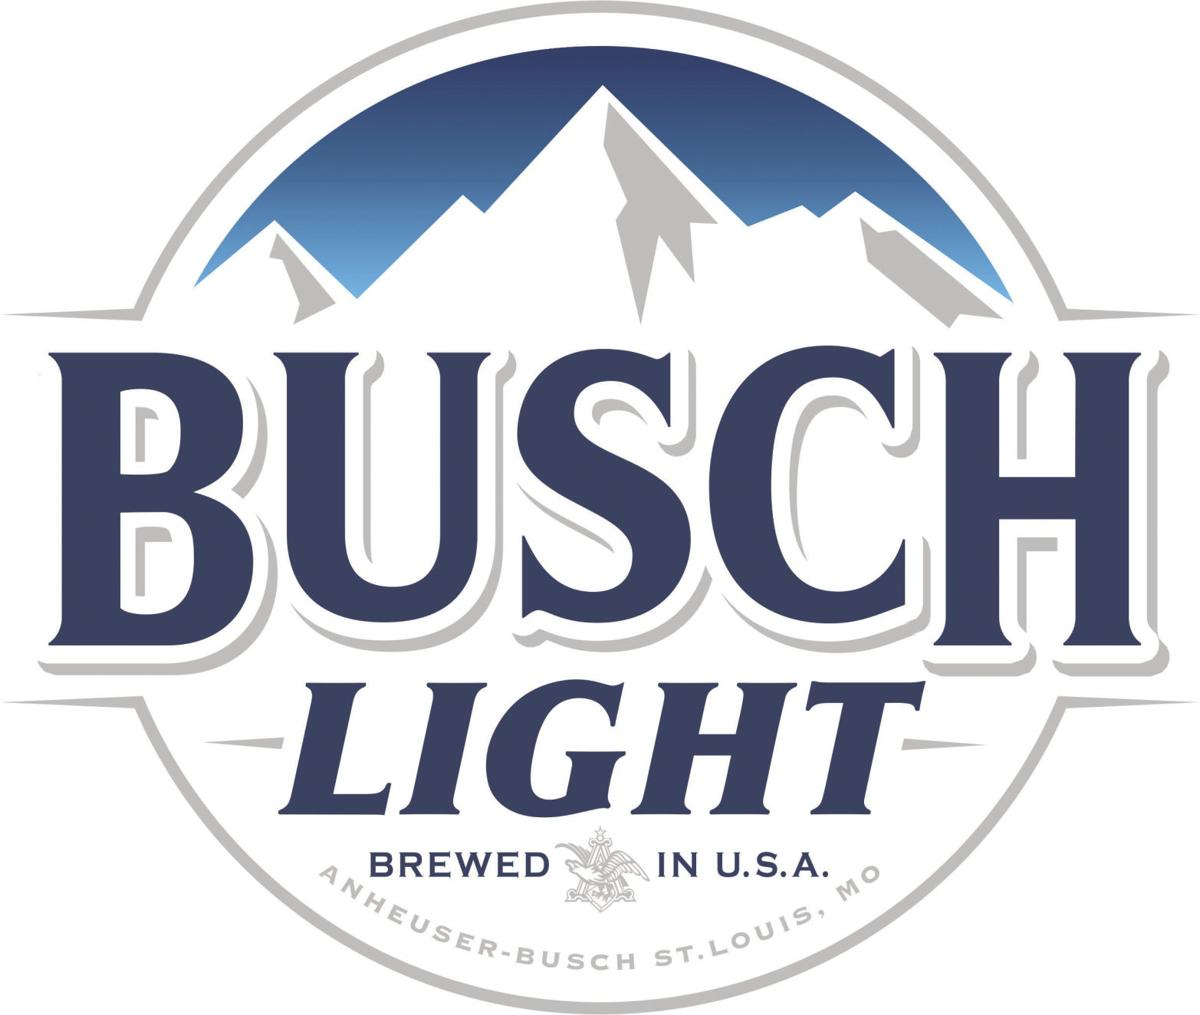 Cheap beer busch light is light on everything beer busch light courtesy photo mozeypictures Gallery